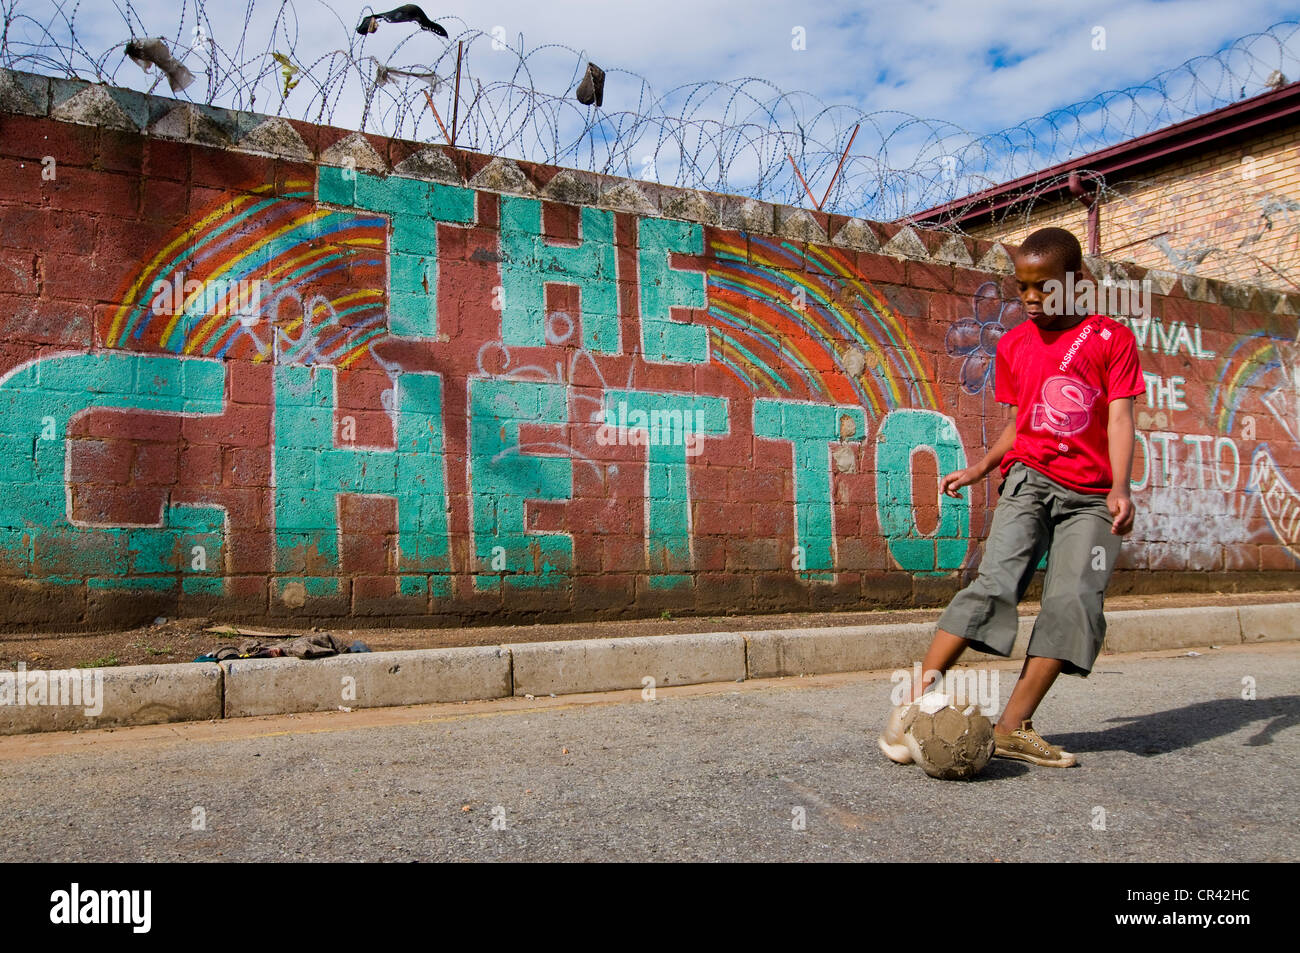 boy playing football in front of wall with the word